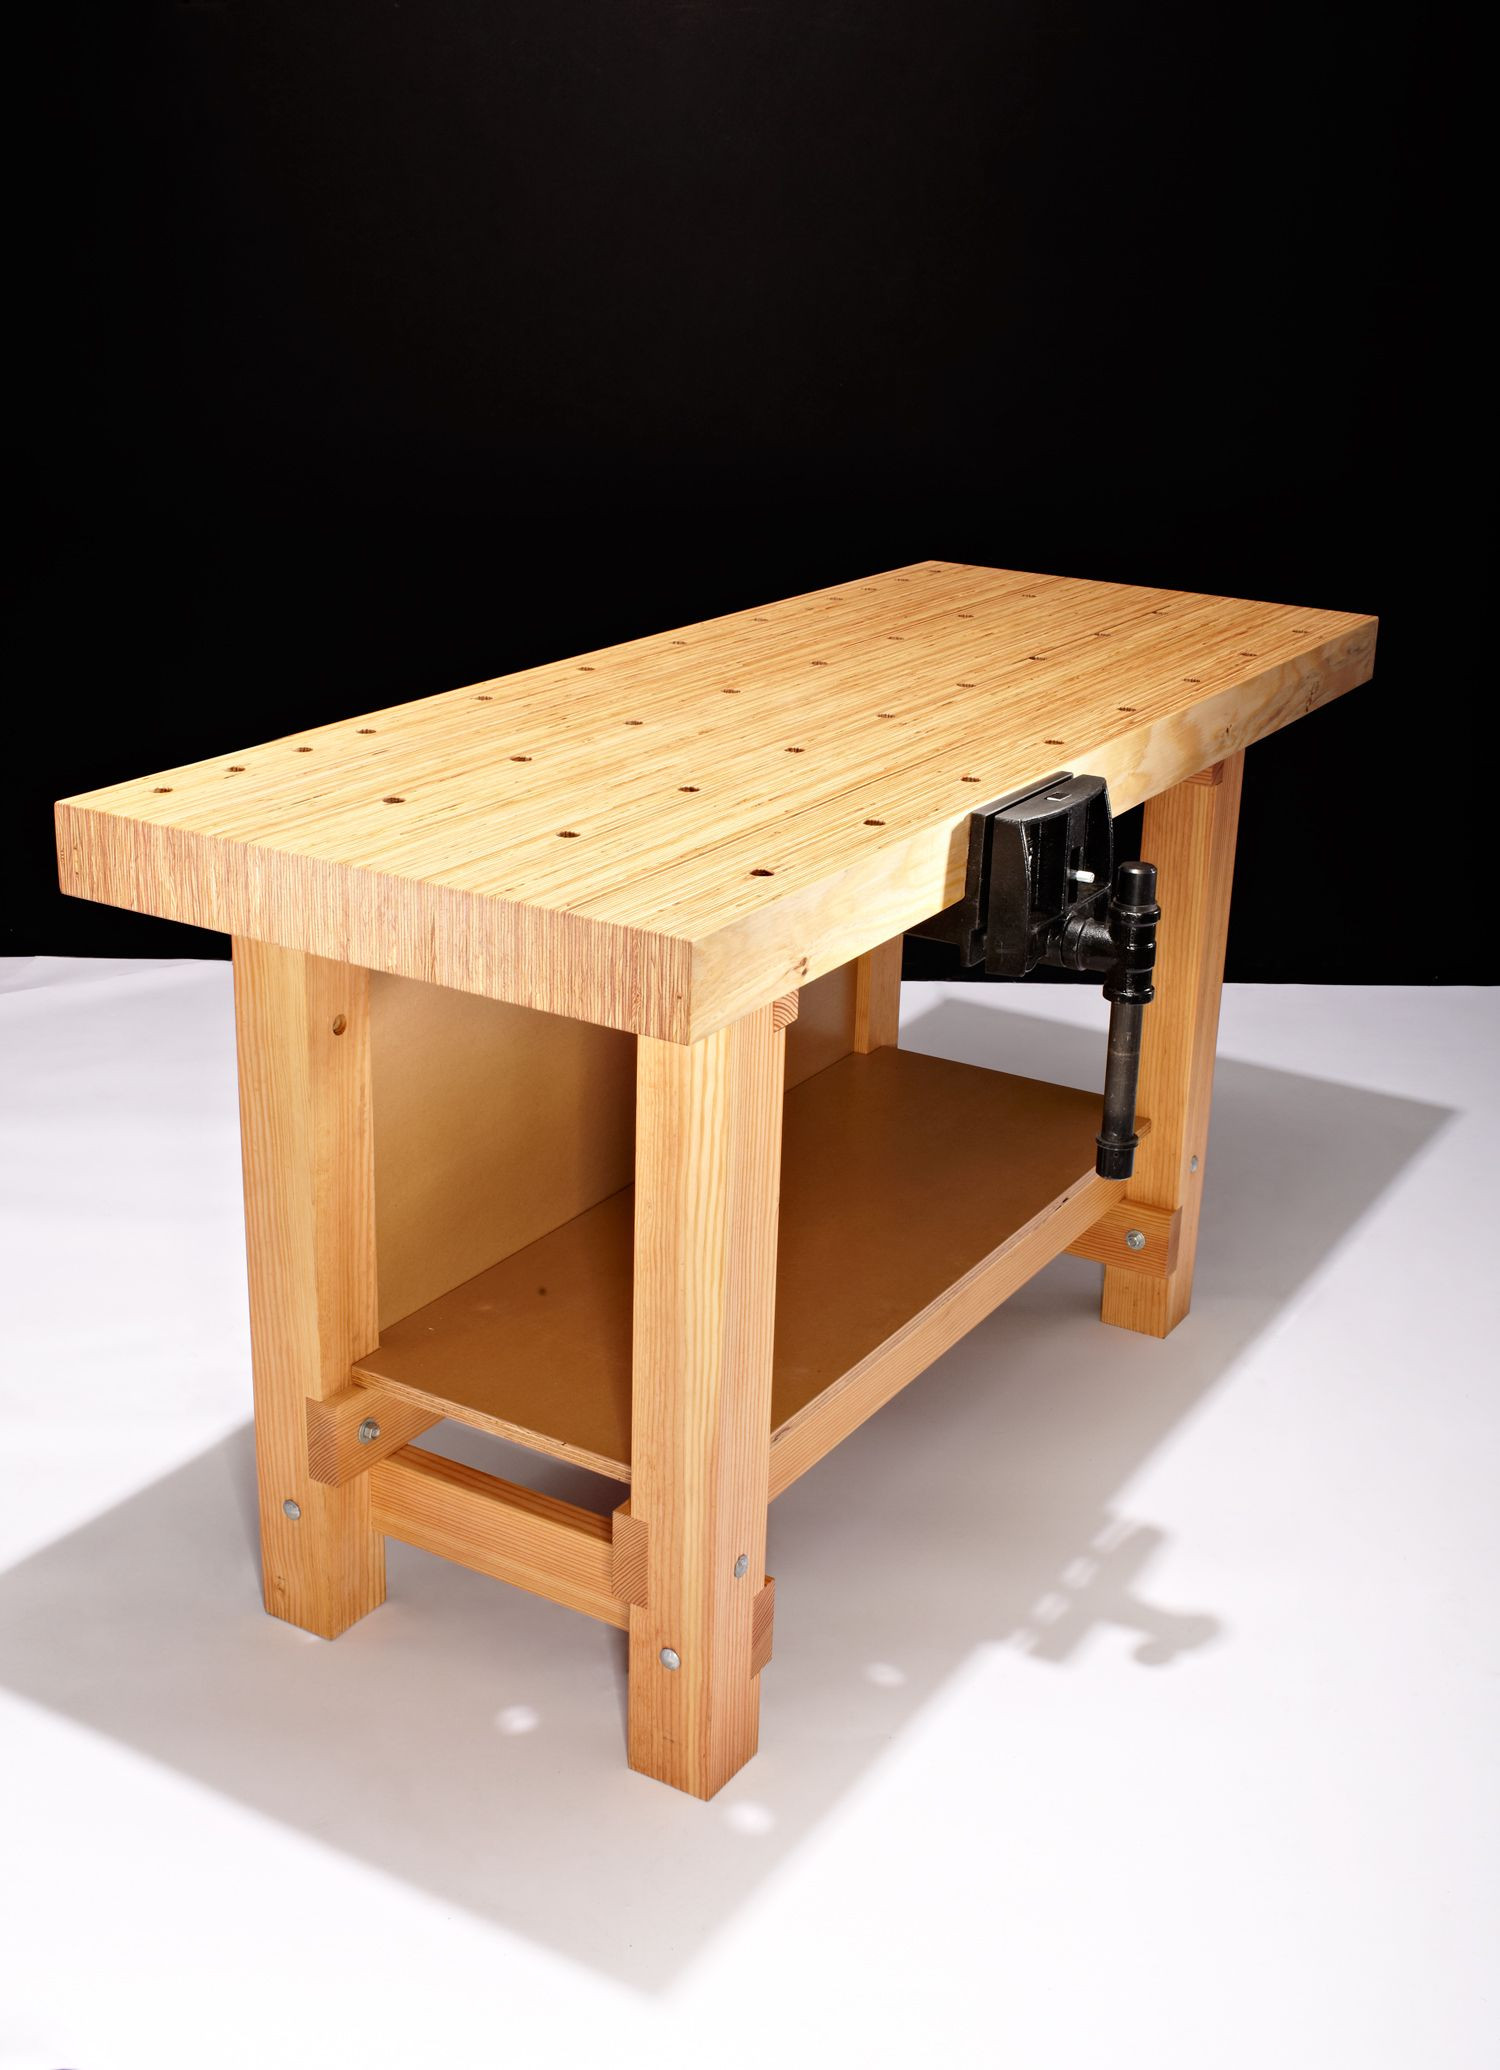 Best ideas about DIY Wood Work . Save or Pin PopularMechanics Project reminders and tips Now.